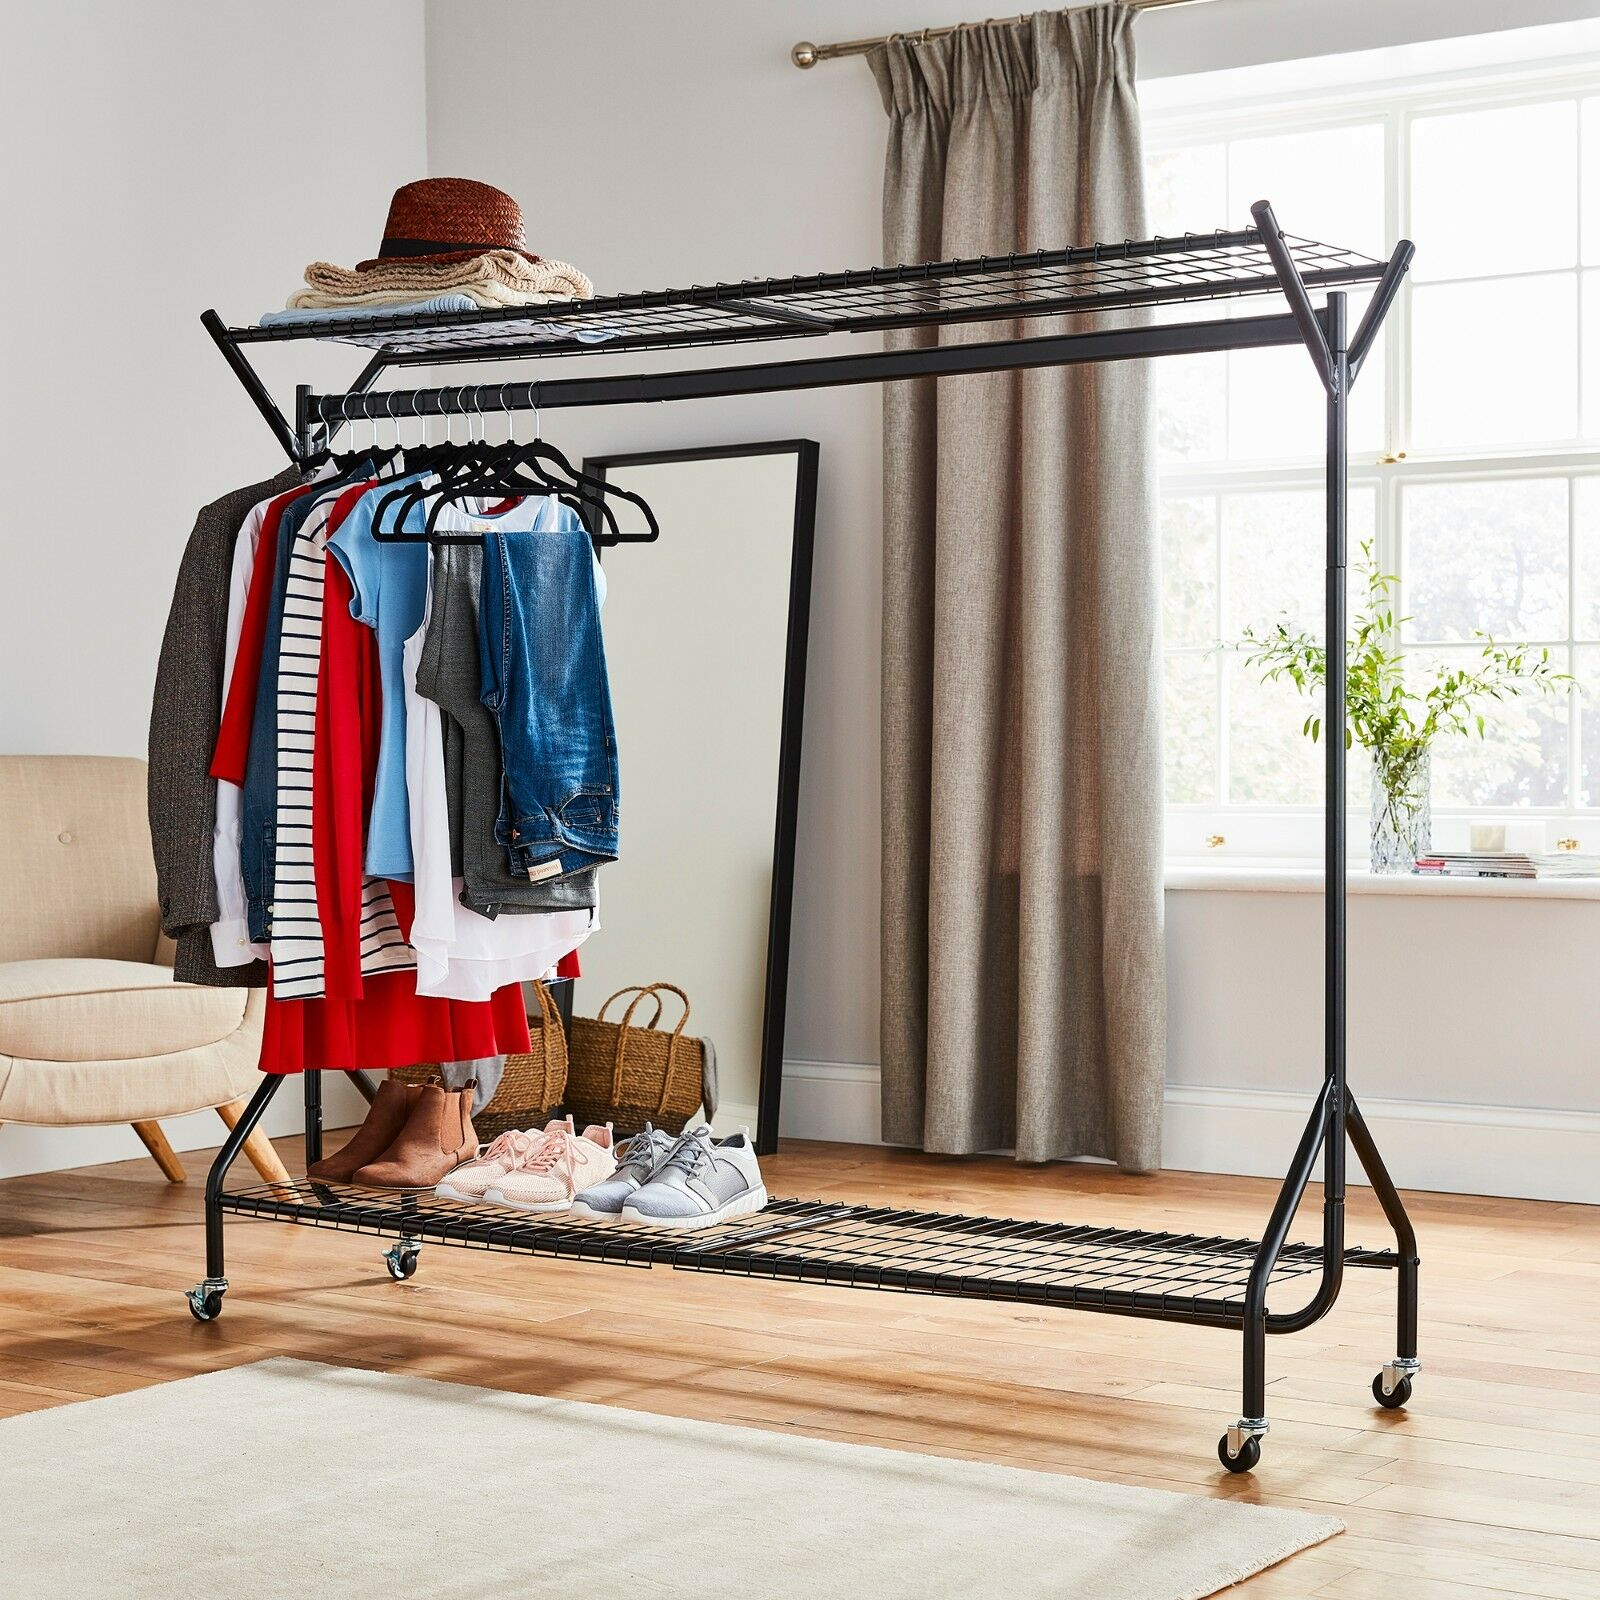 details about black heavy duty hanging clothes garment rail with shoe rack shelf and hat stand